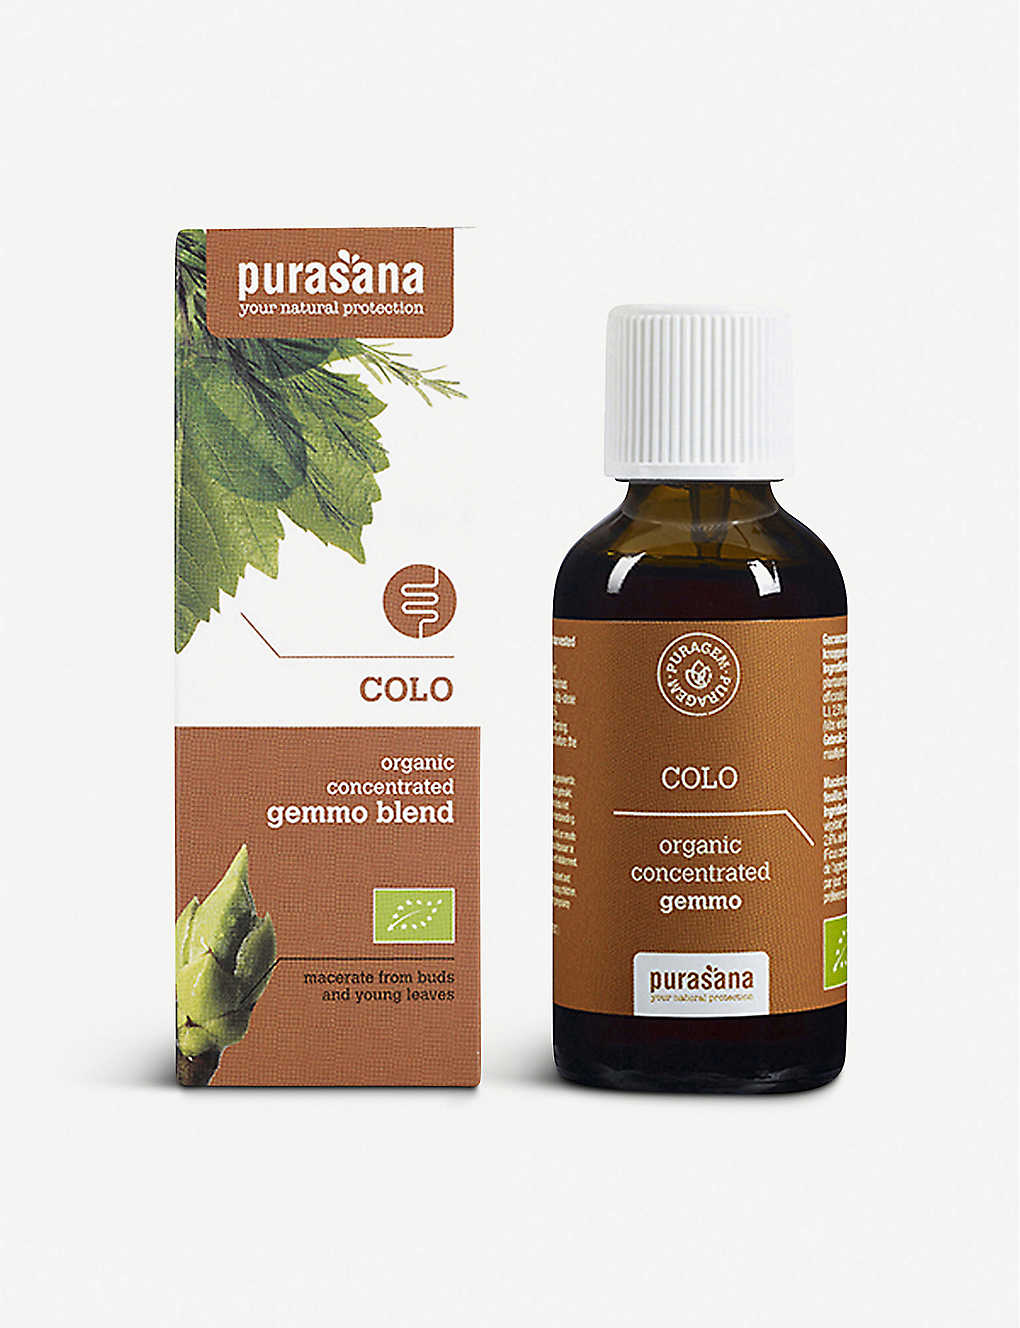 PURASANA: Puragem Colo organic concentrated gemmo 50ml